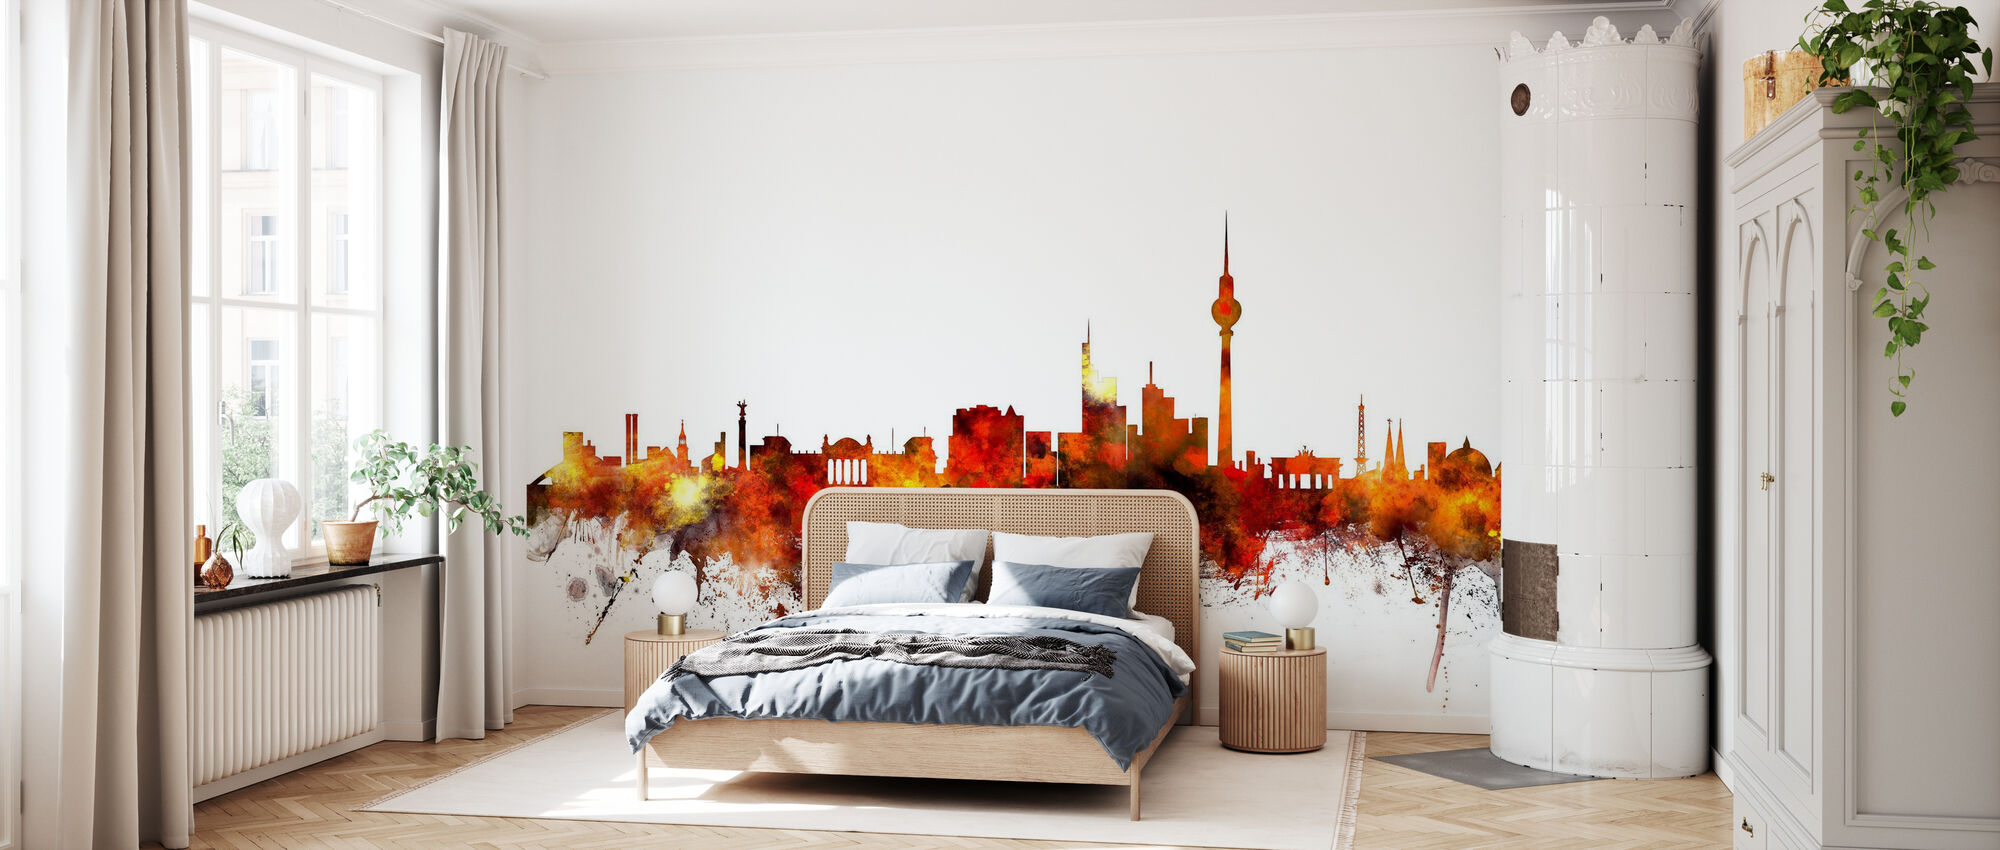 Berlin Skyline 2 - Wallpaper - Bedroom